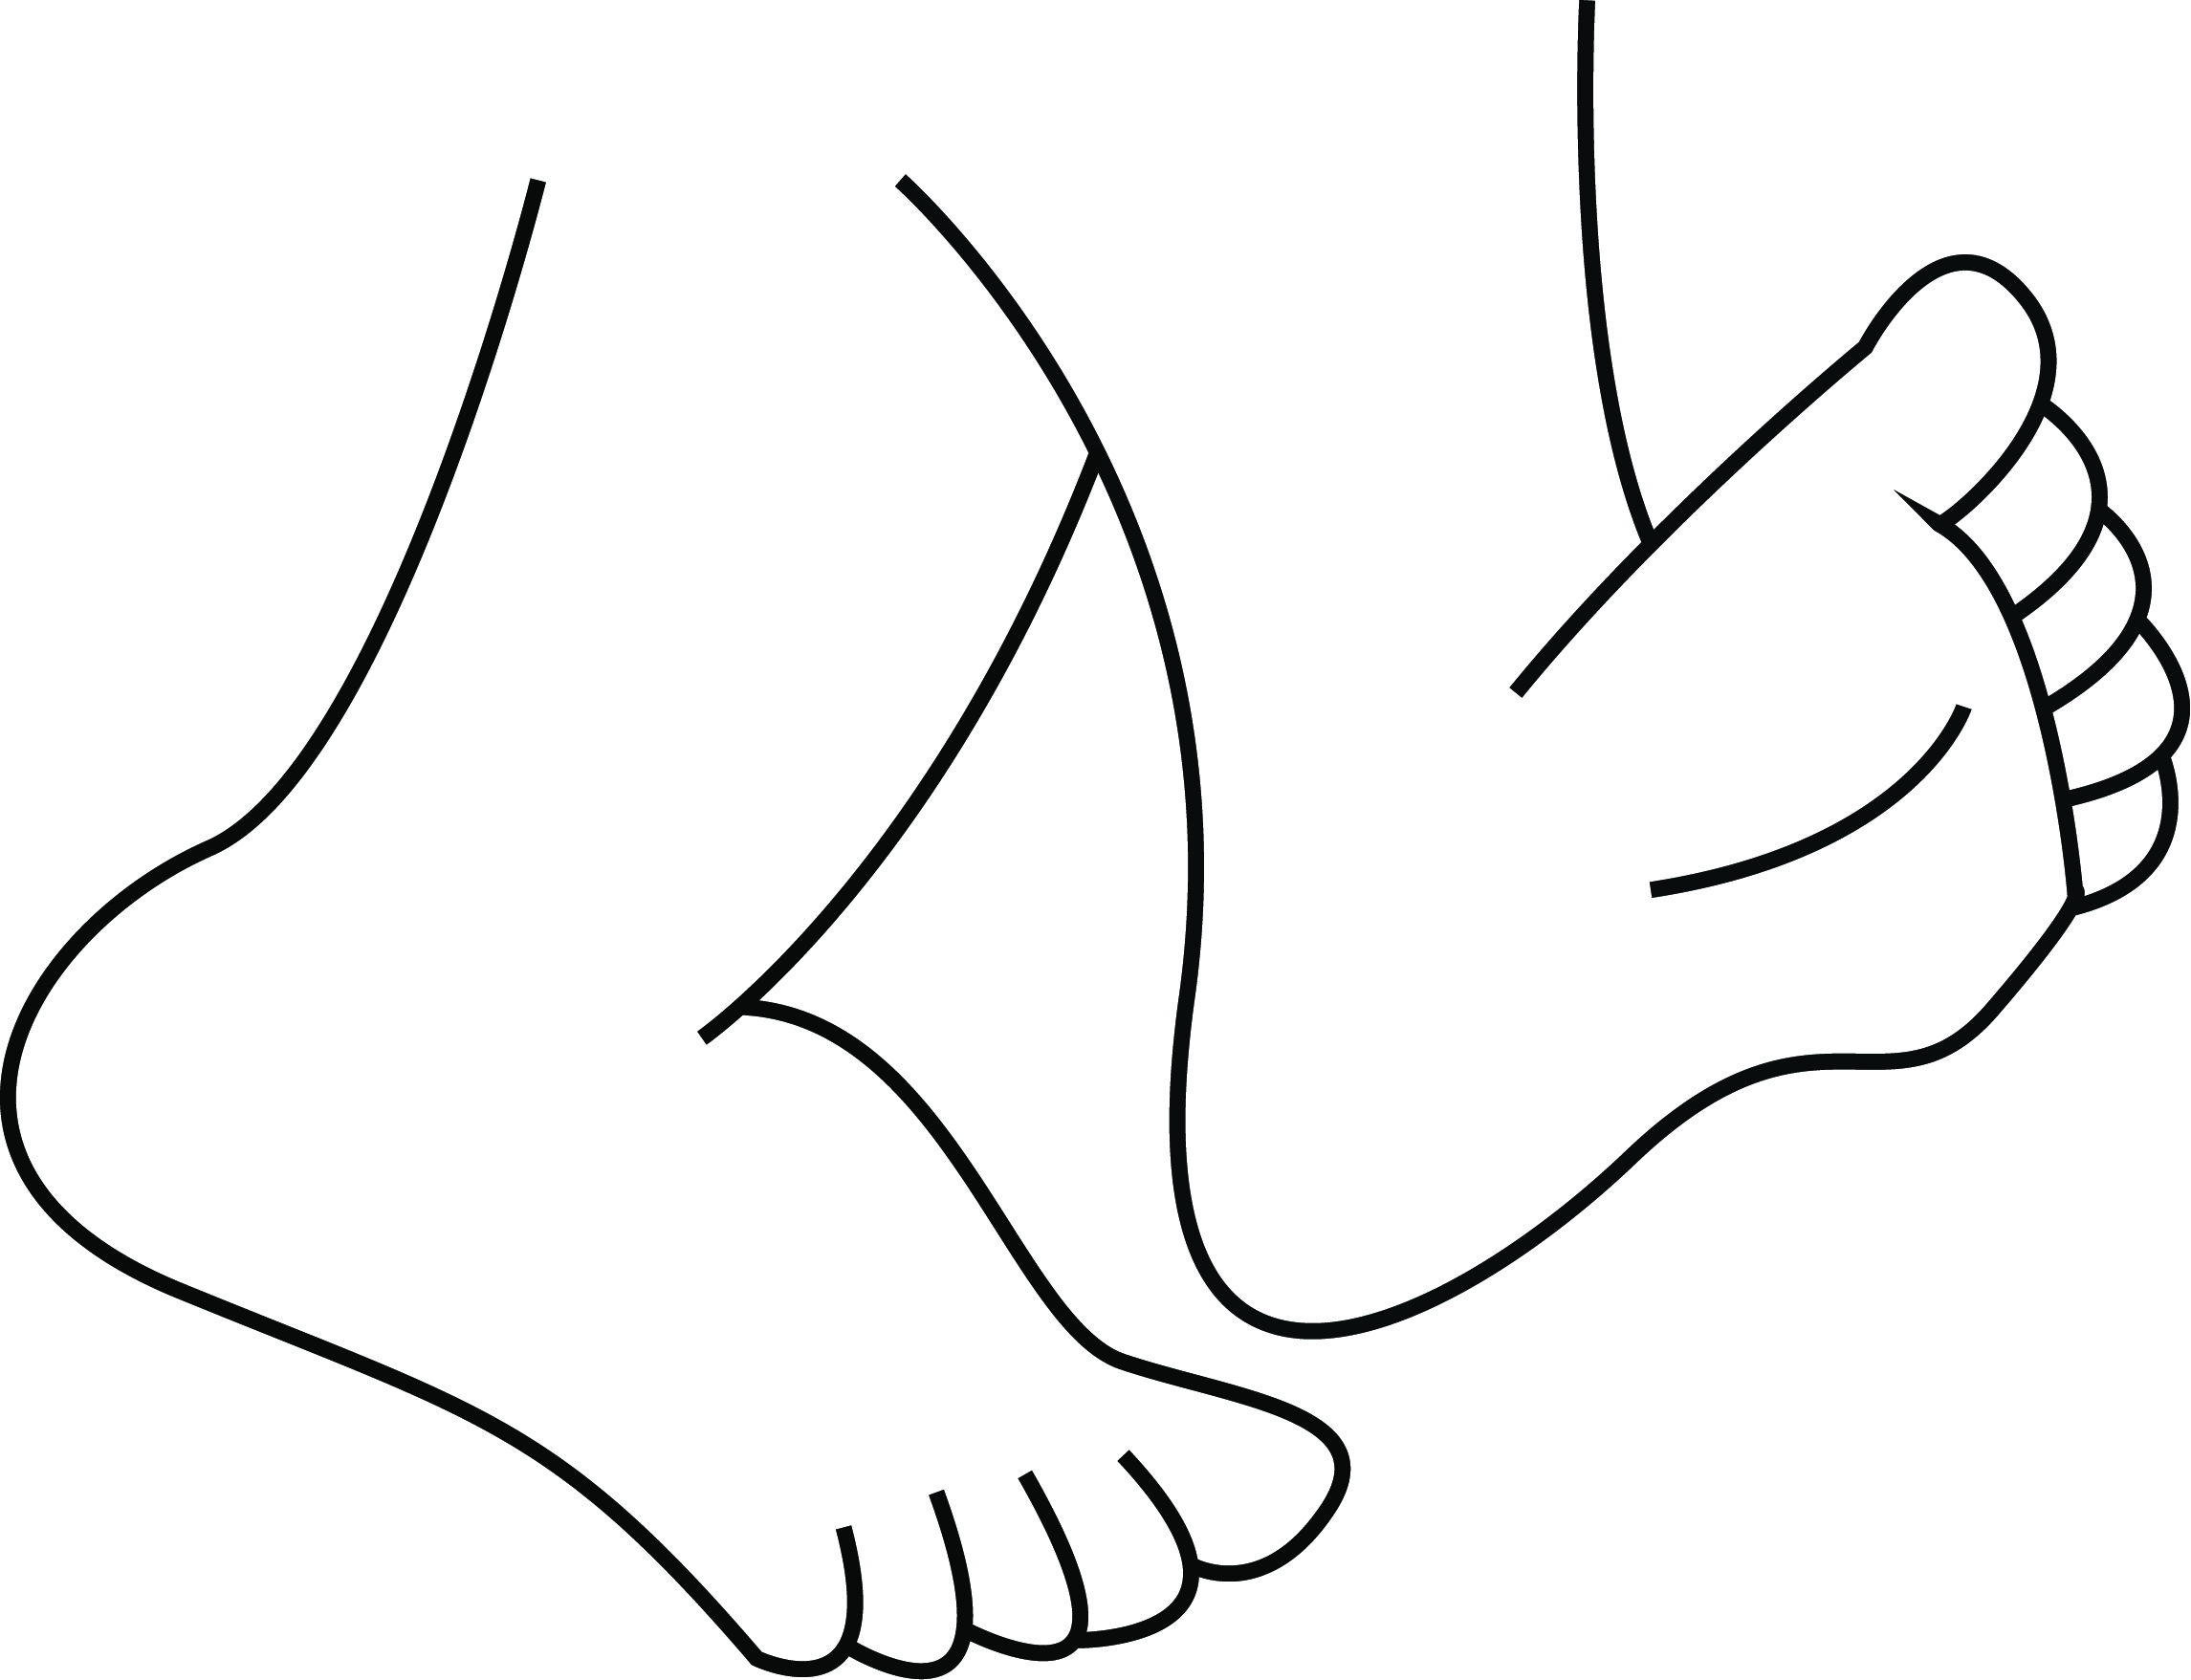 Feet with shoes clipart black and white clipart free download Cartoon walking feet clipart 2 clip art library - ClipartPost clipart free download